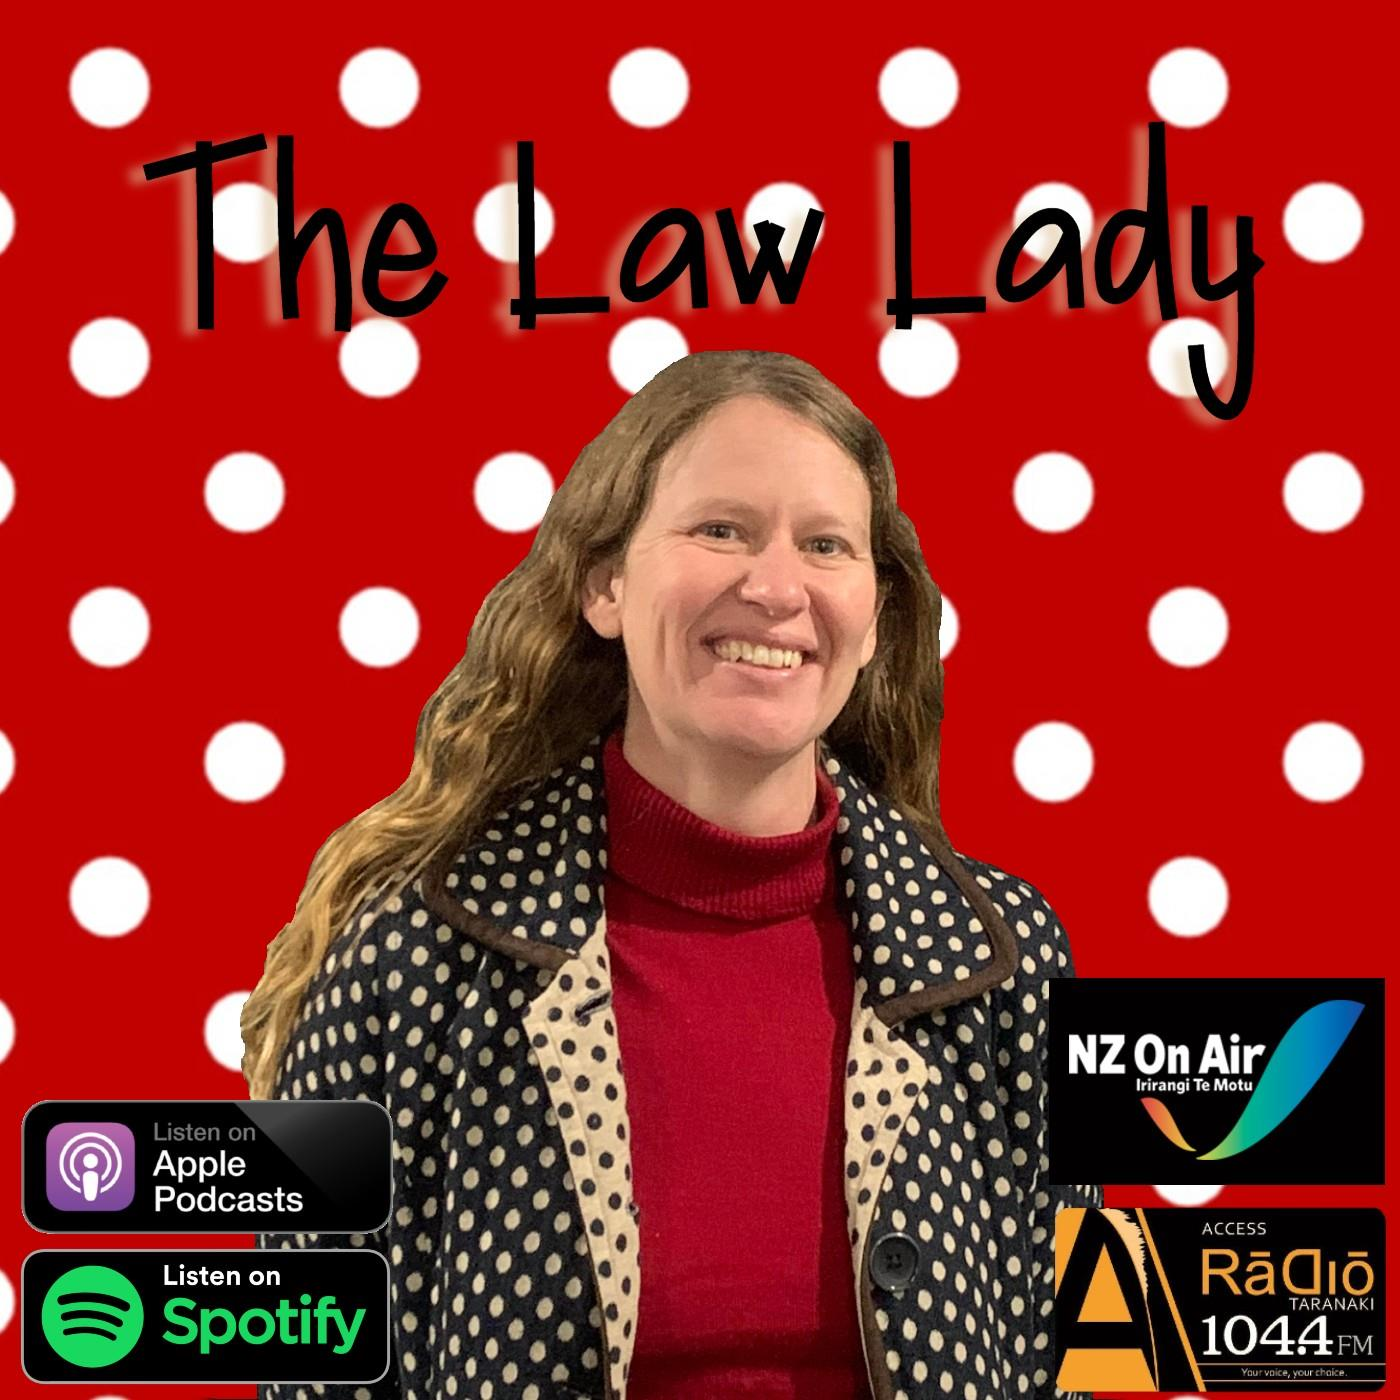 The Law Lady 21-10-2021 Disclosing Vaccination Status